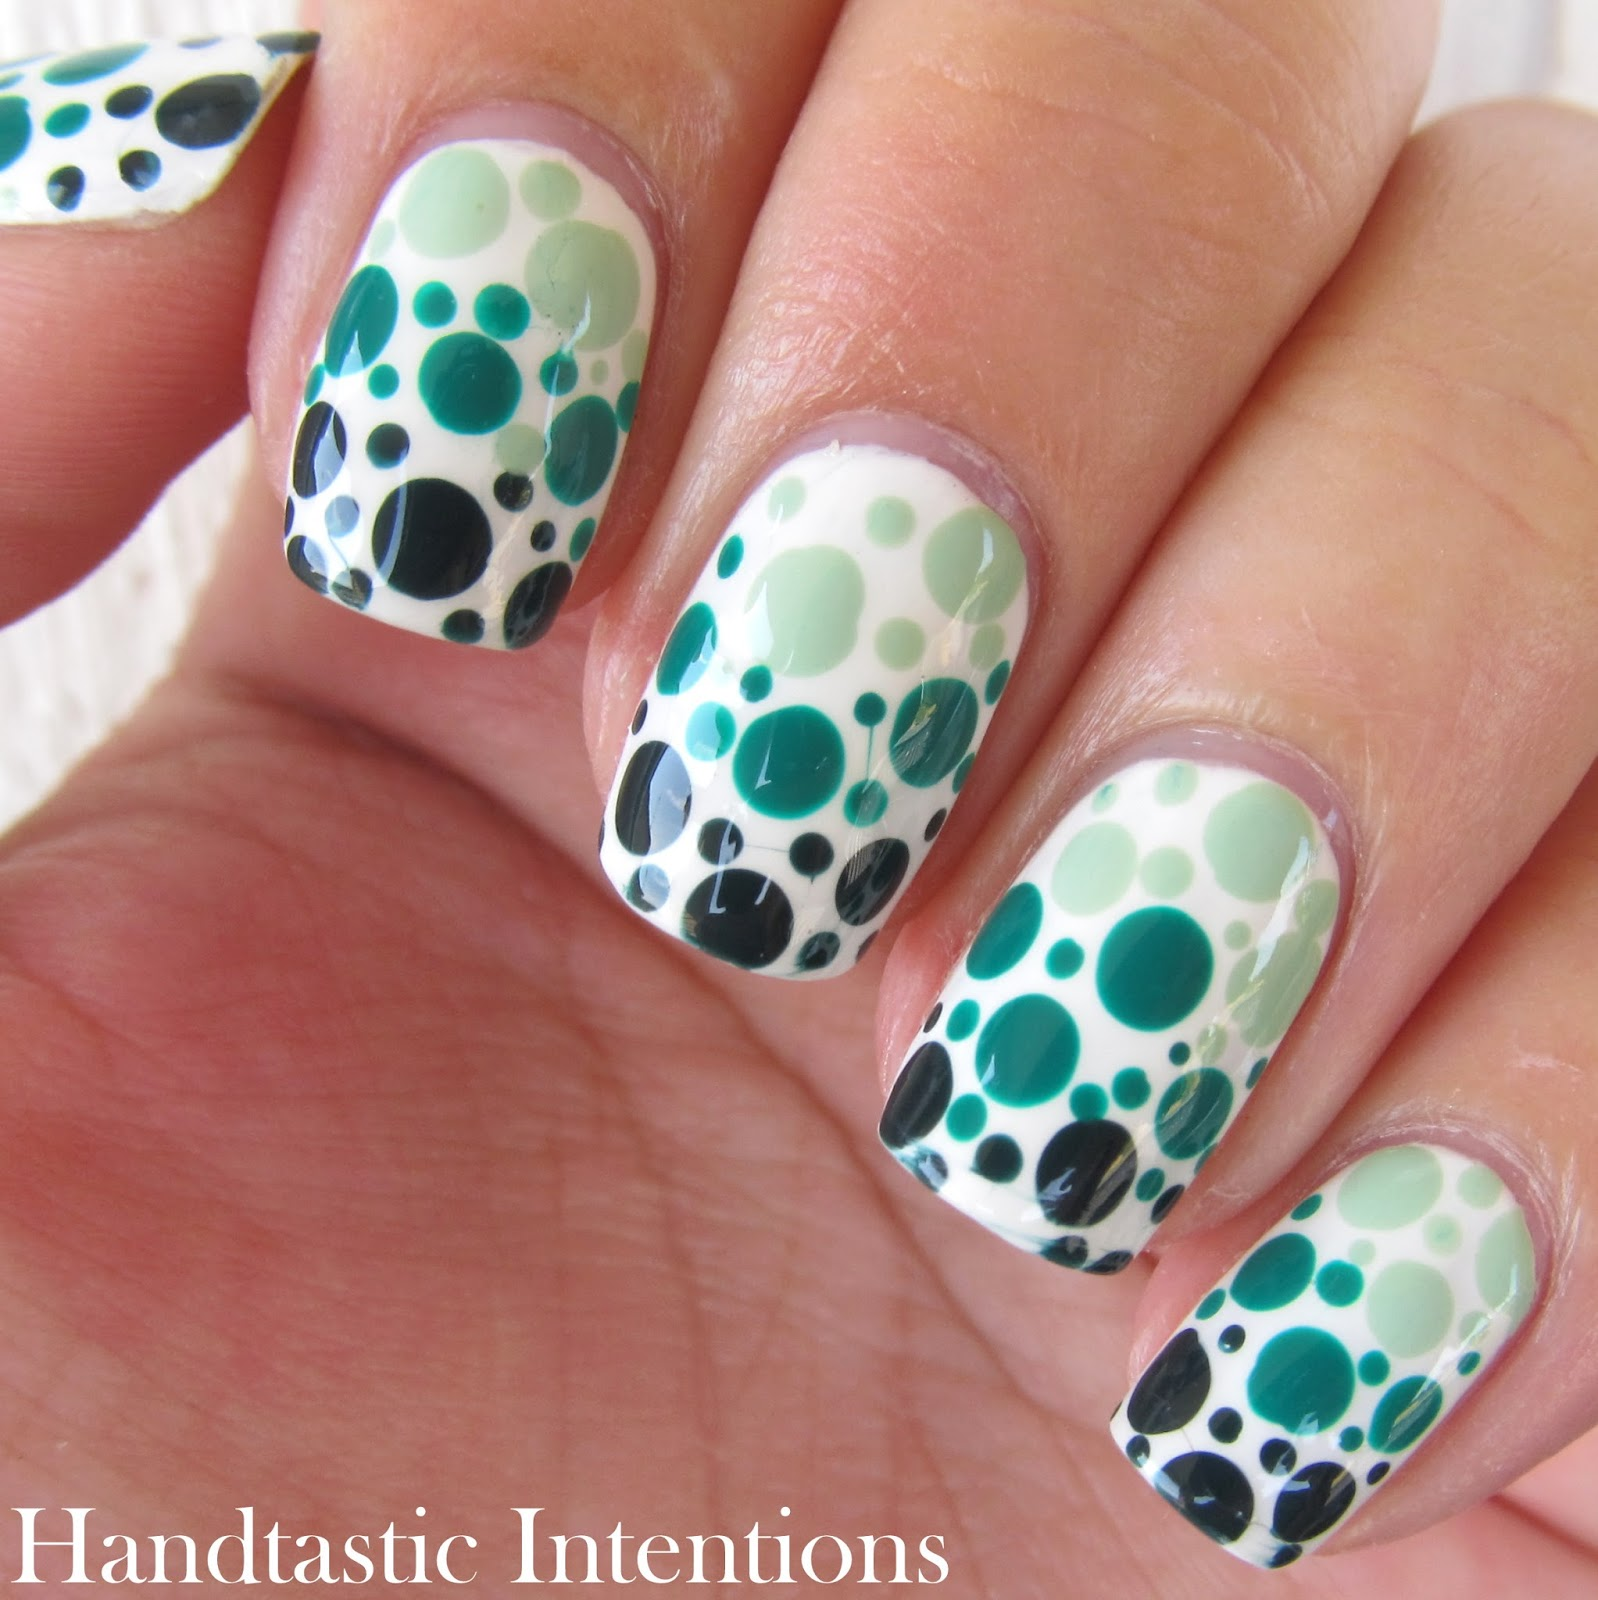 Handtastic Intentions: Nail Art: Green Dotticure for ...